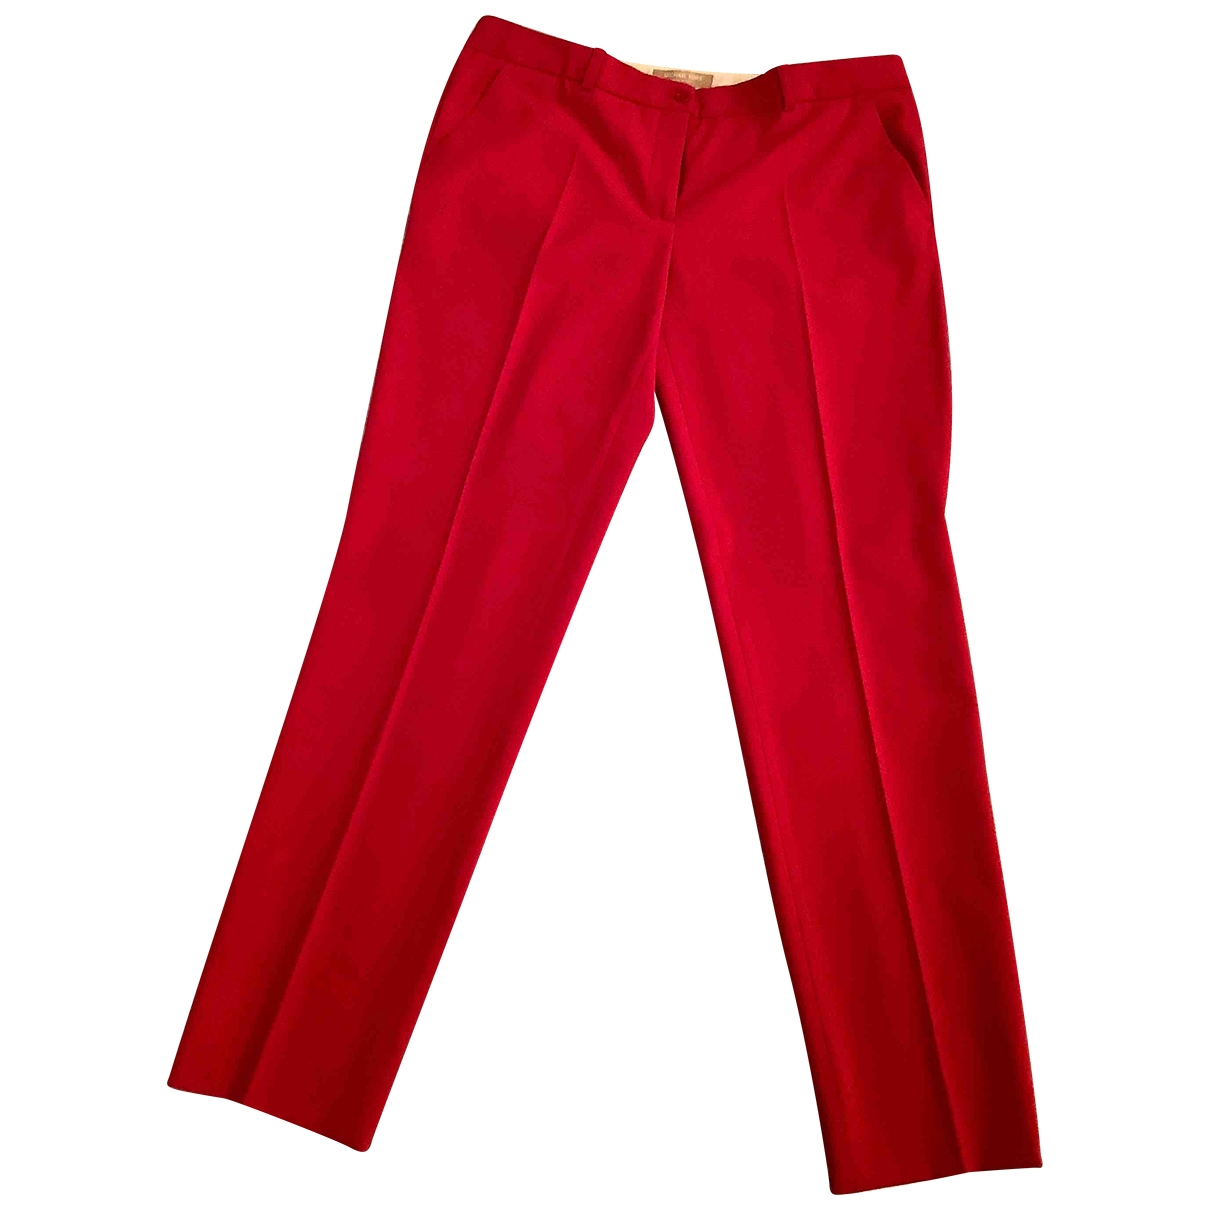 Michael Kors \N Red Wool Trousers for Women 10 US